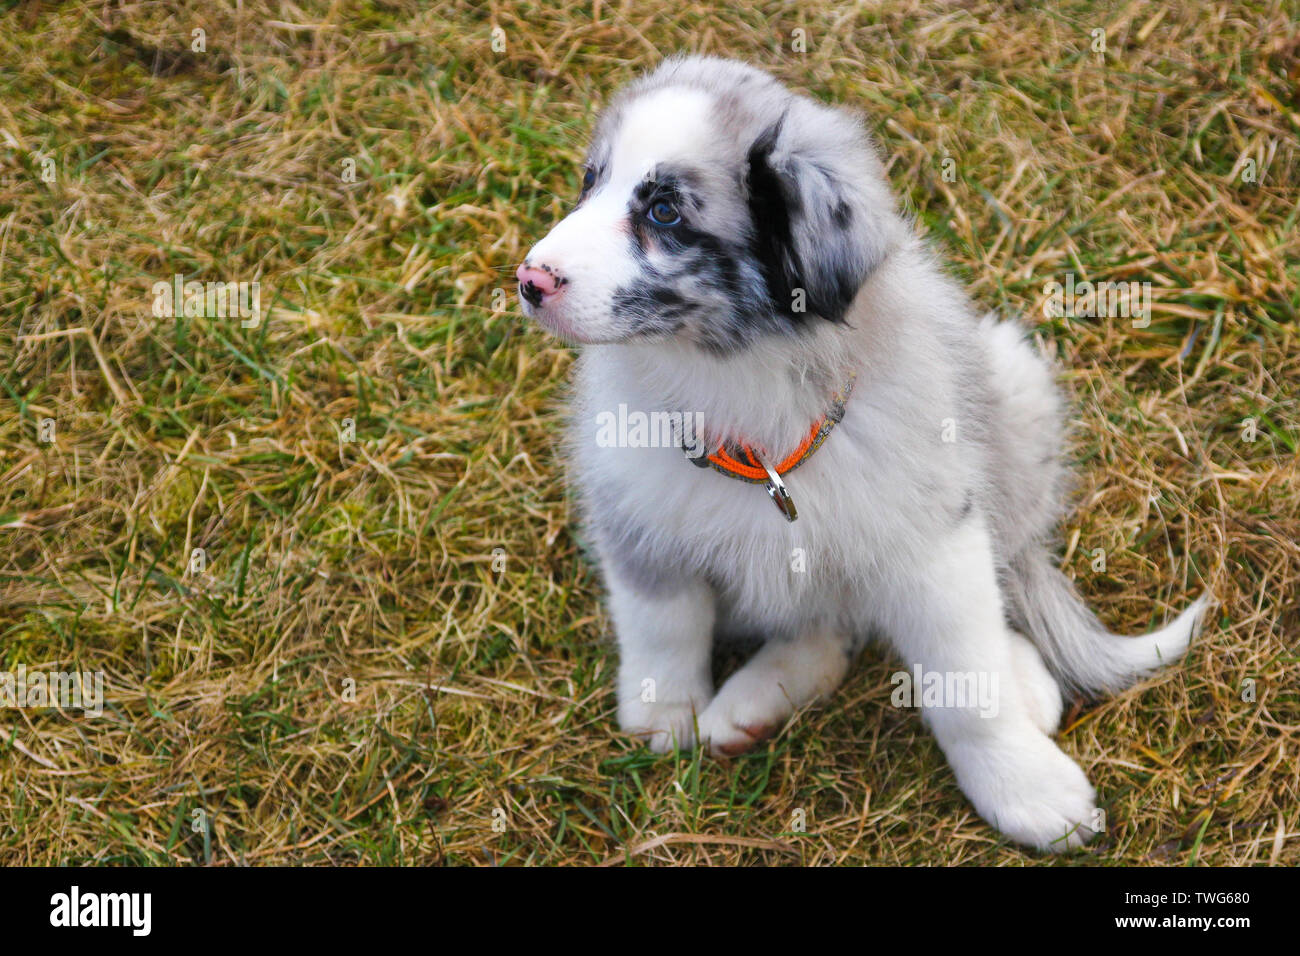 The cute young puppy of the Australian shepherd is posing on the dry grass during the walk. He enjoys to be outside, looking like smiling. - Stock Image